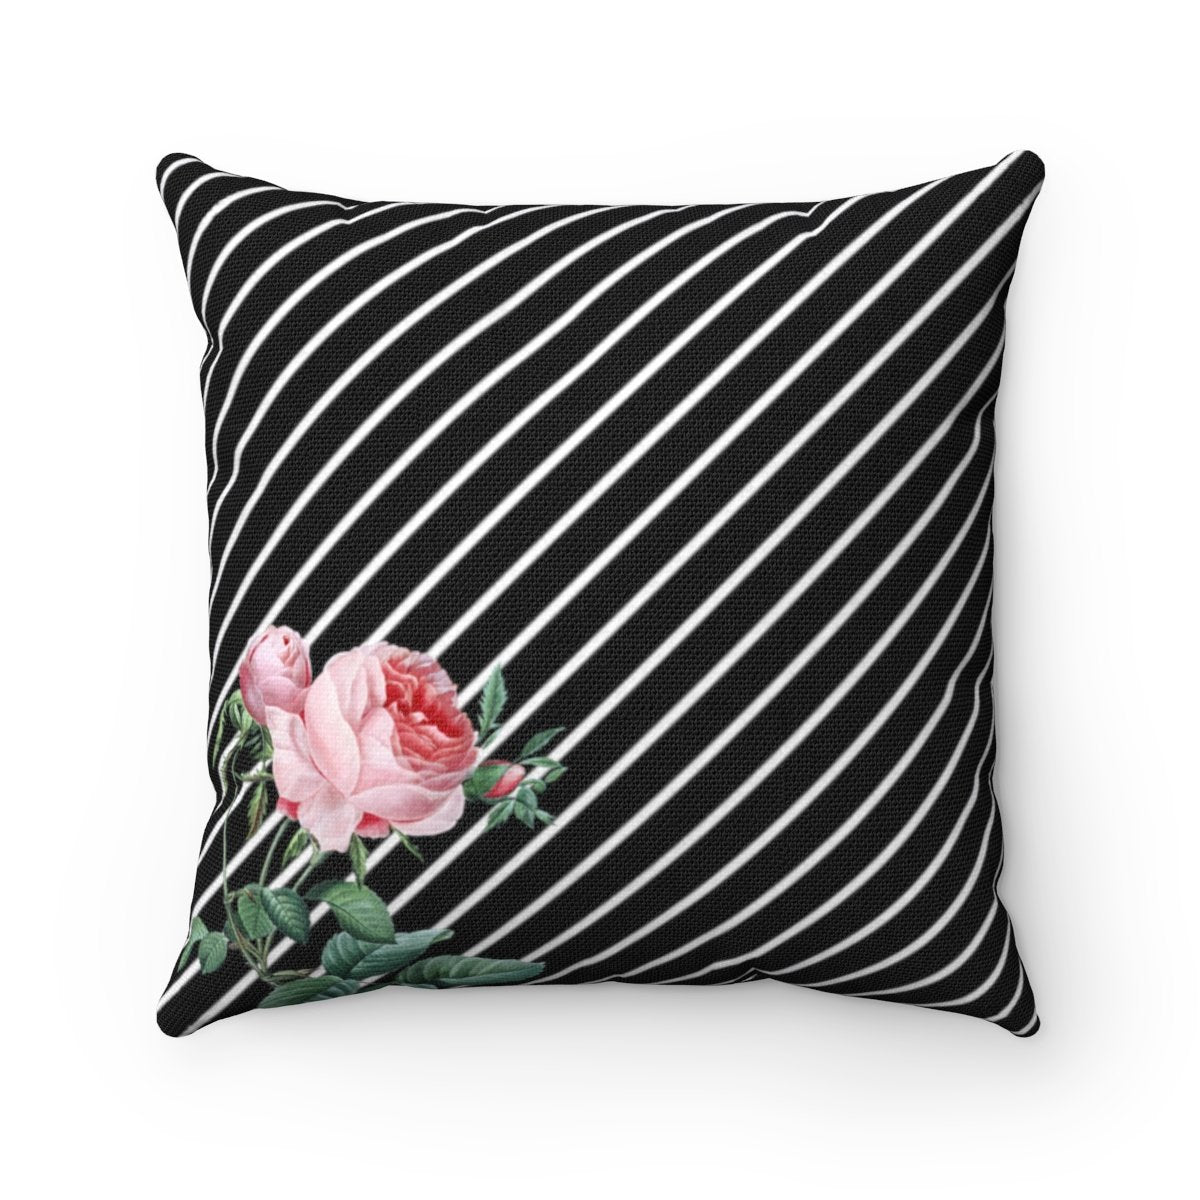 Luxury Rosa Striped Floral decorative cushion cover-Home Decor-Maison d'Elite-14x14-Très Elite